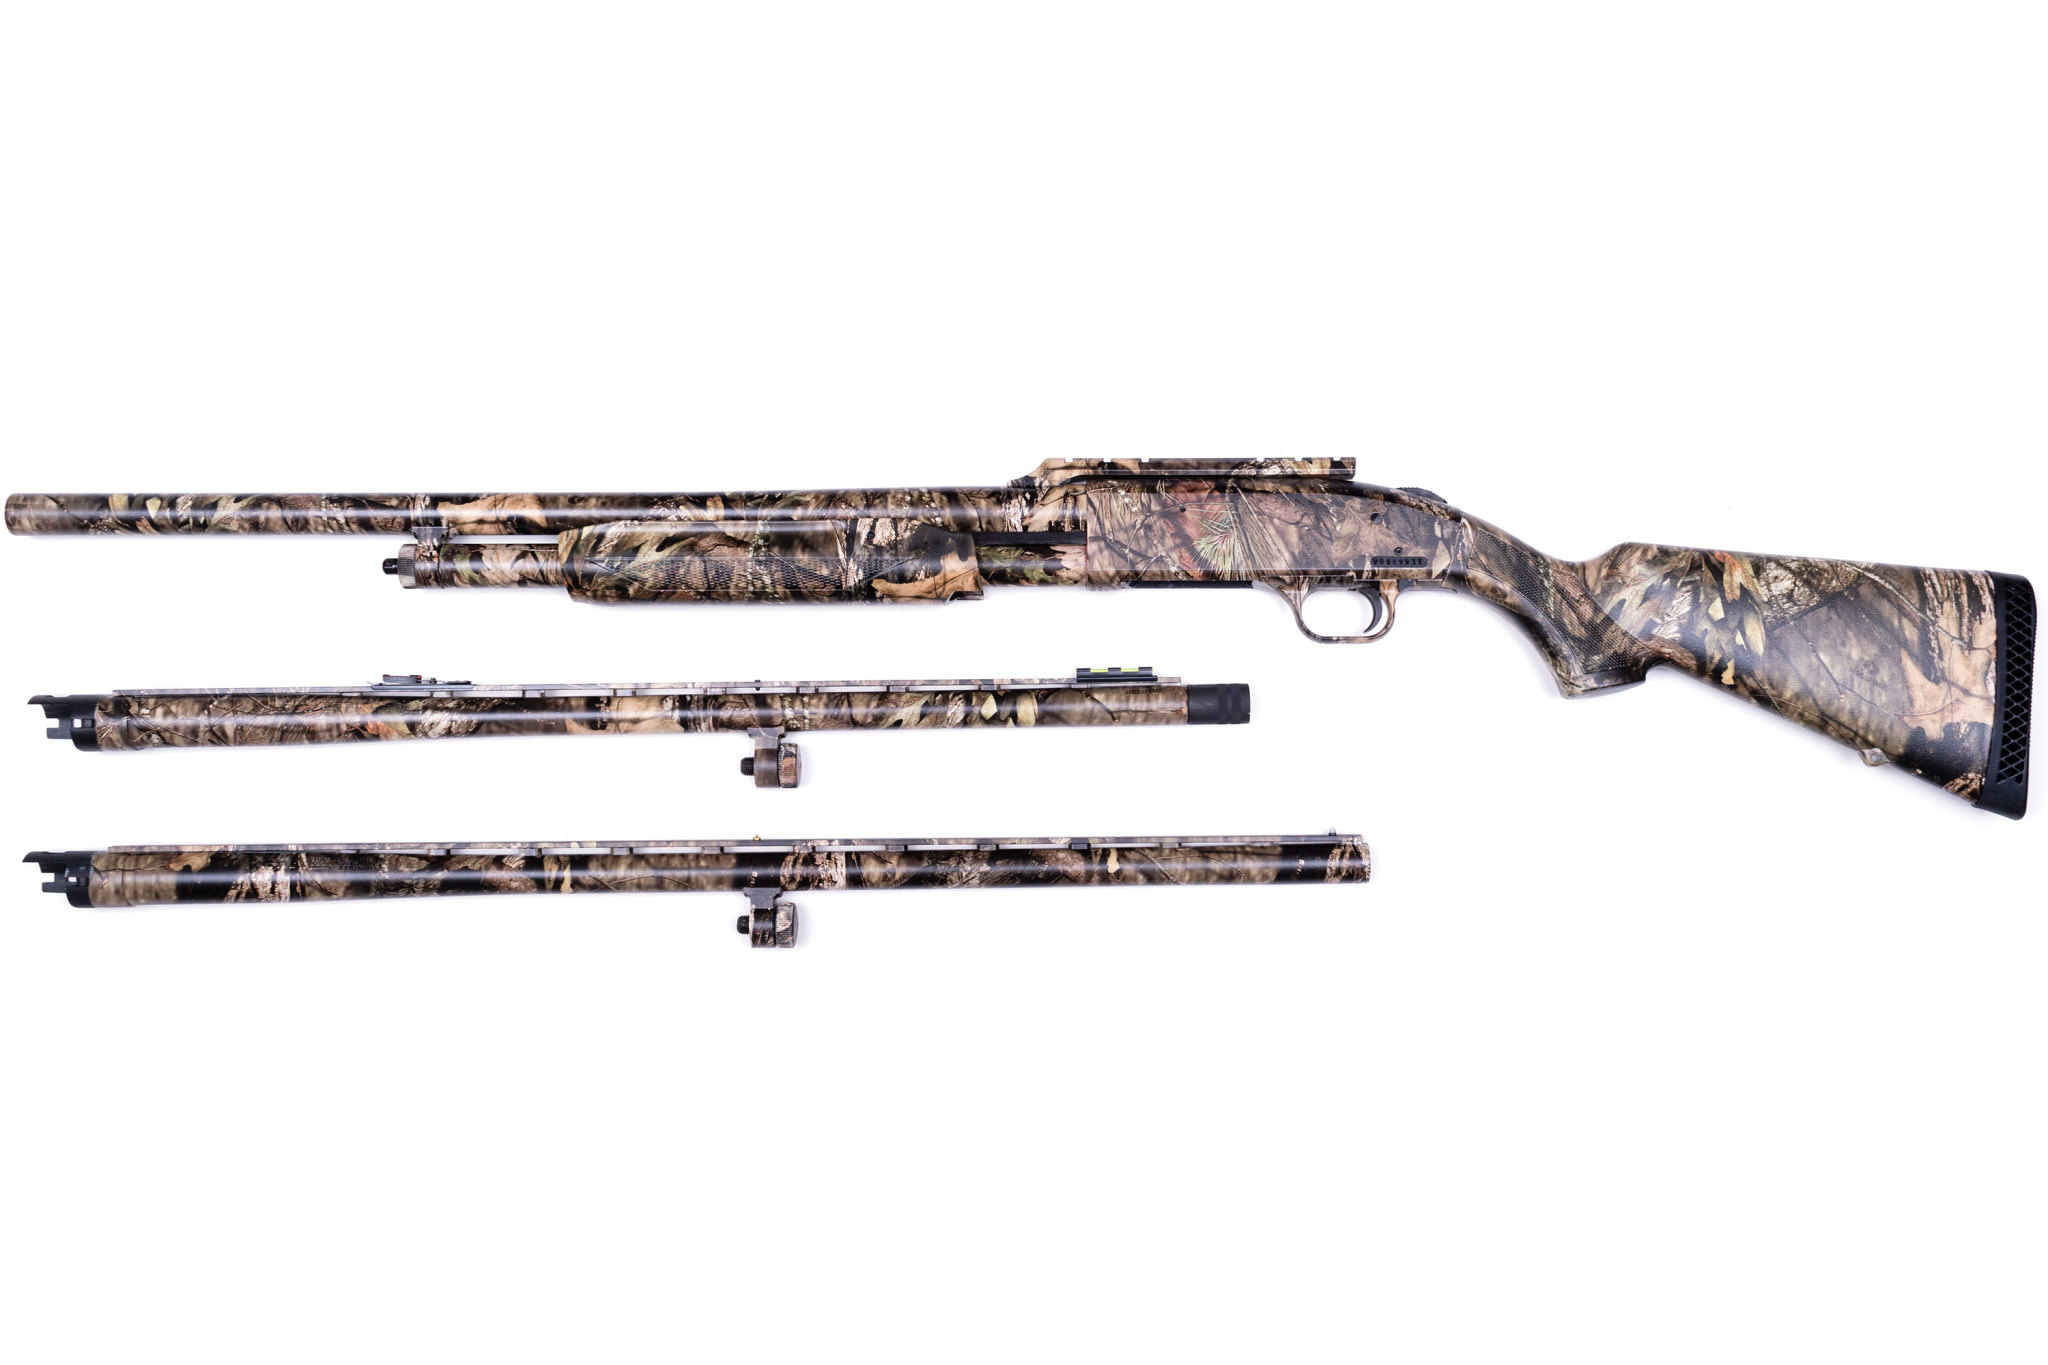 "Mossberg Mossberg 500 3-Barrel Combo, Mossy Oak Break-Up Country Camo, 12 Gauge Pump Action Shotgun, 3"" Chamber, 24"" Rifled, 24"" Ported, 28"" Ported Waterfowl Barrels"